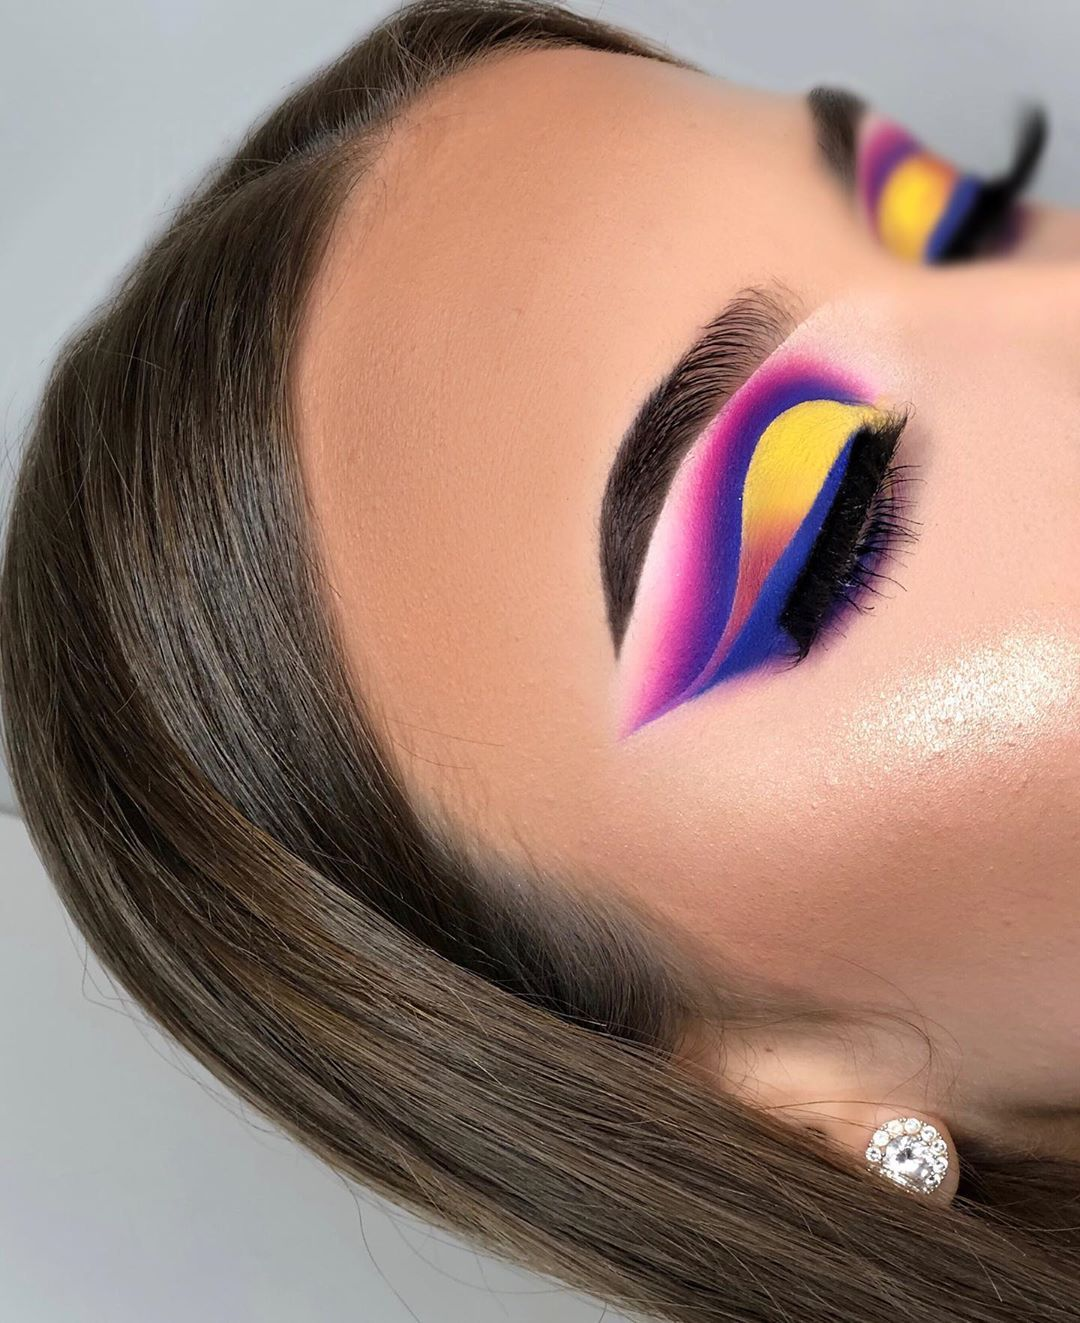 ALYSSA EDWARDS PALETTE 👑 Gosh I love these colors so much